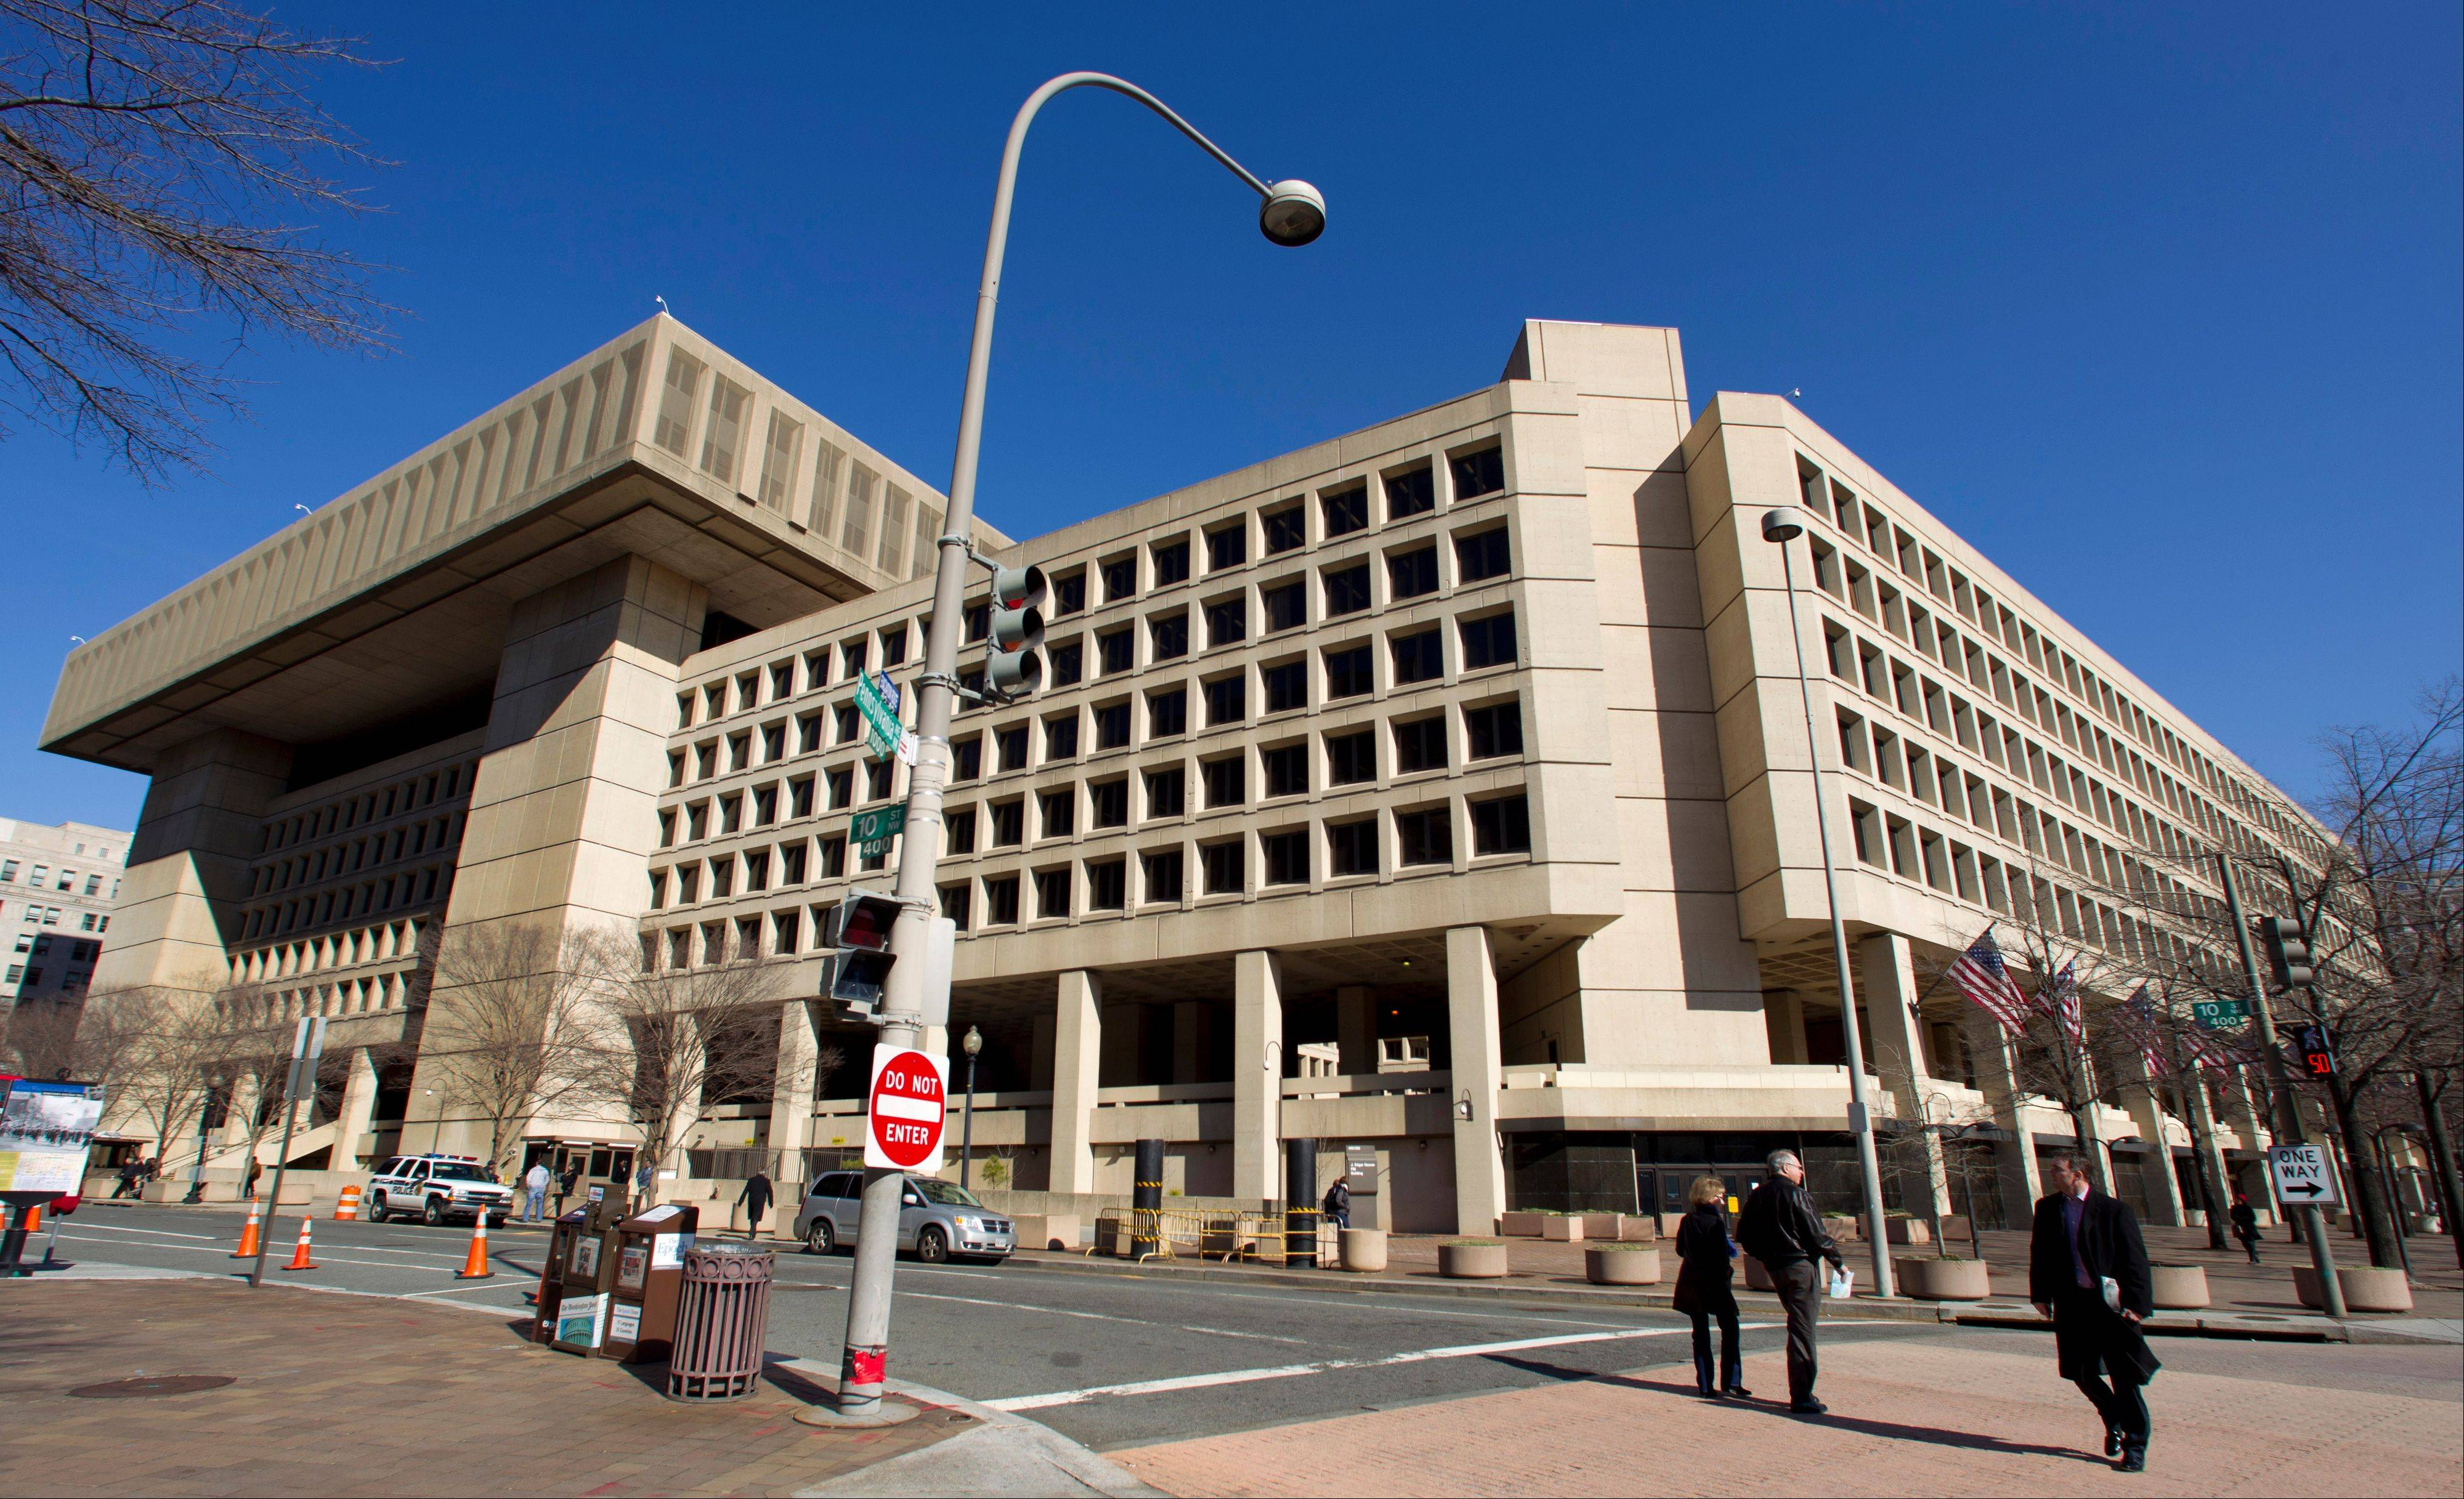 Associated Press The Federal Bureau of Investigation (FBI) headquarters in Washington. Just six blocks from the White House, the FBI�s hulking headquarters overlooking Pennsylvania Avenue has long been the government building everyone loves to hate.